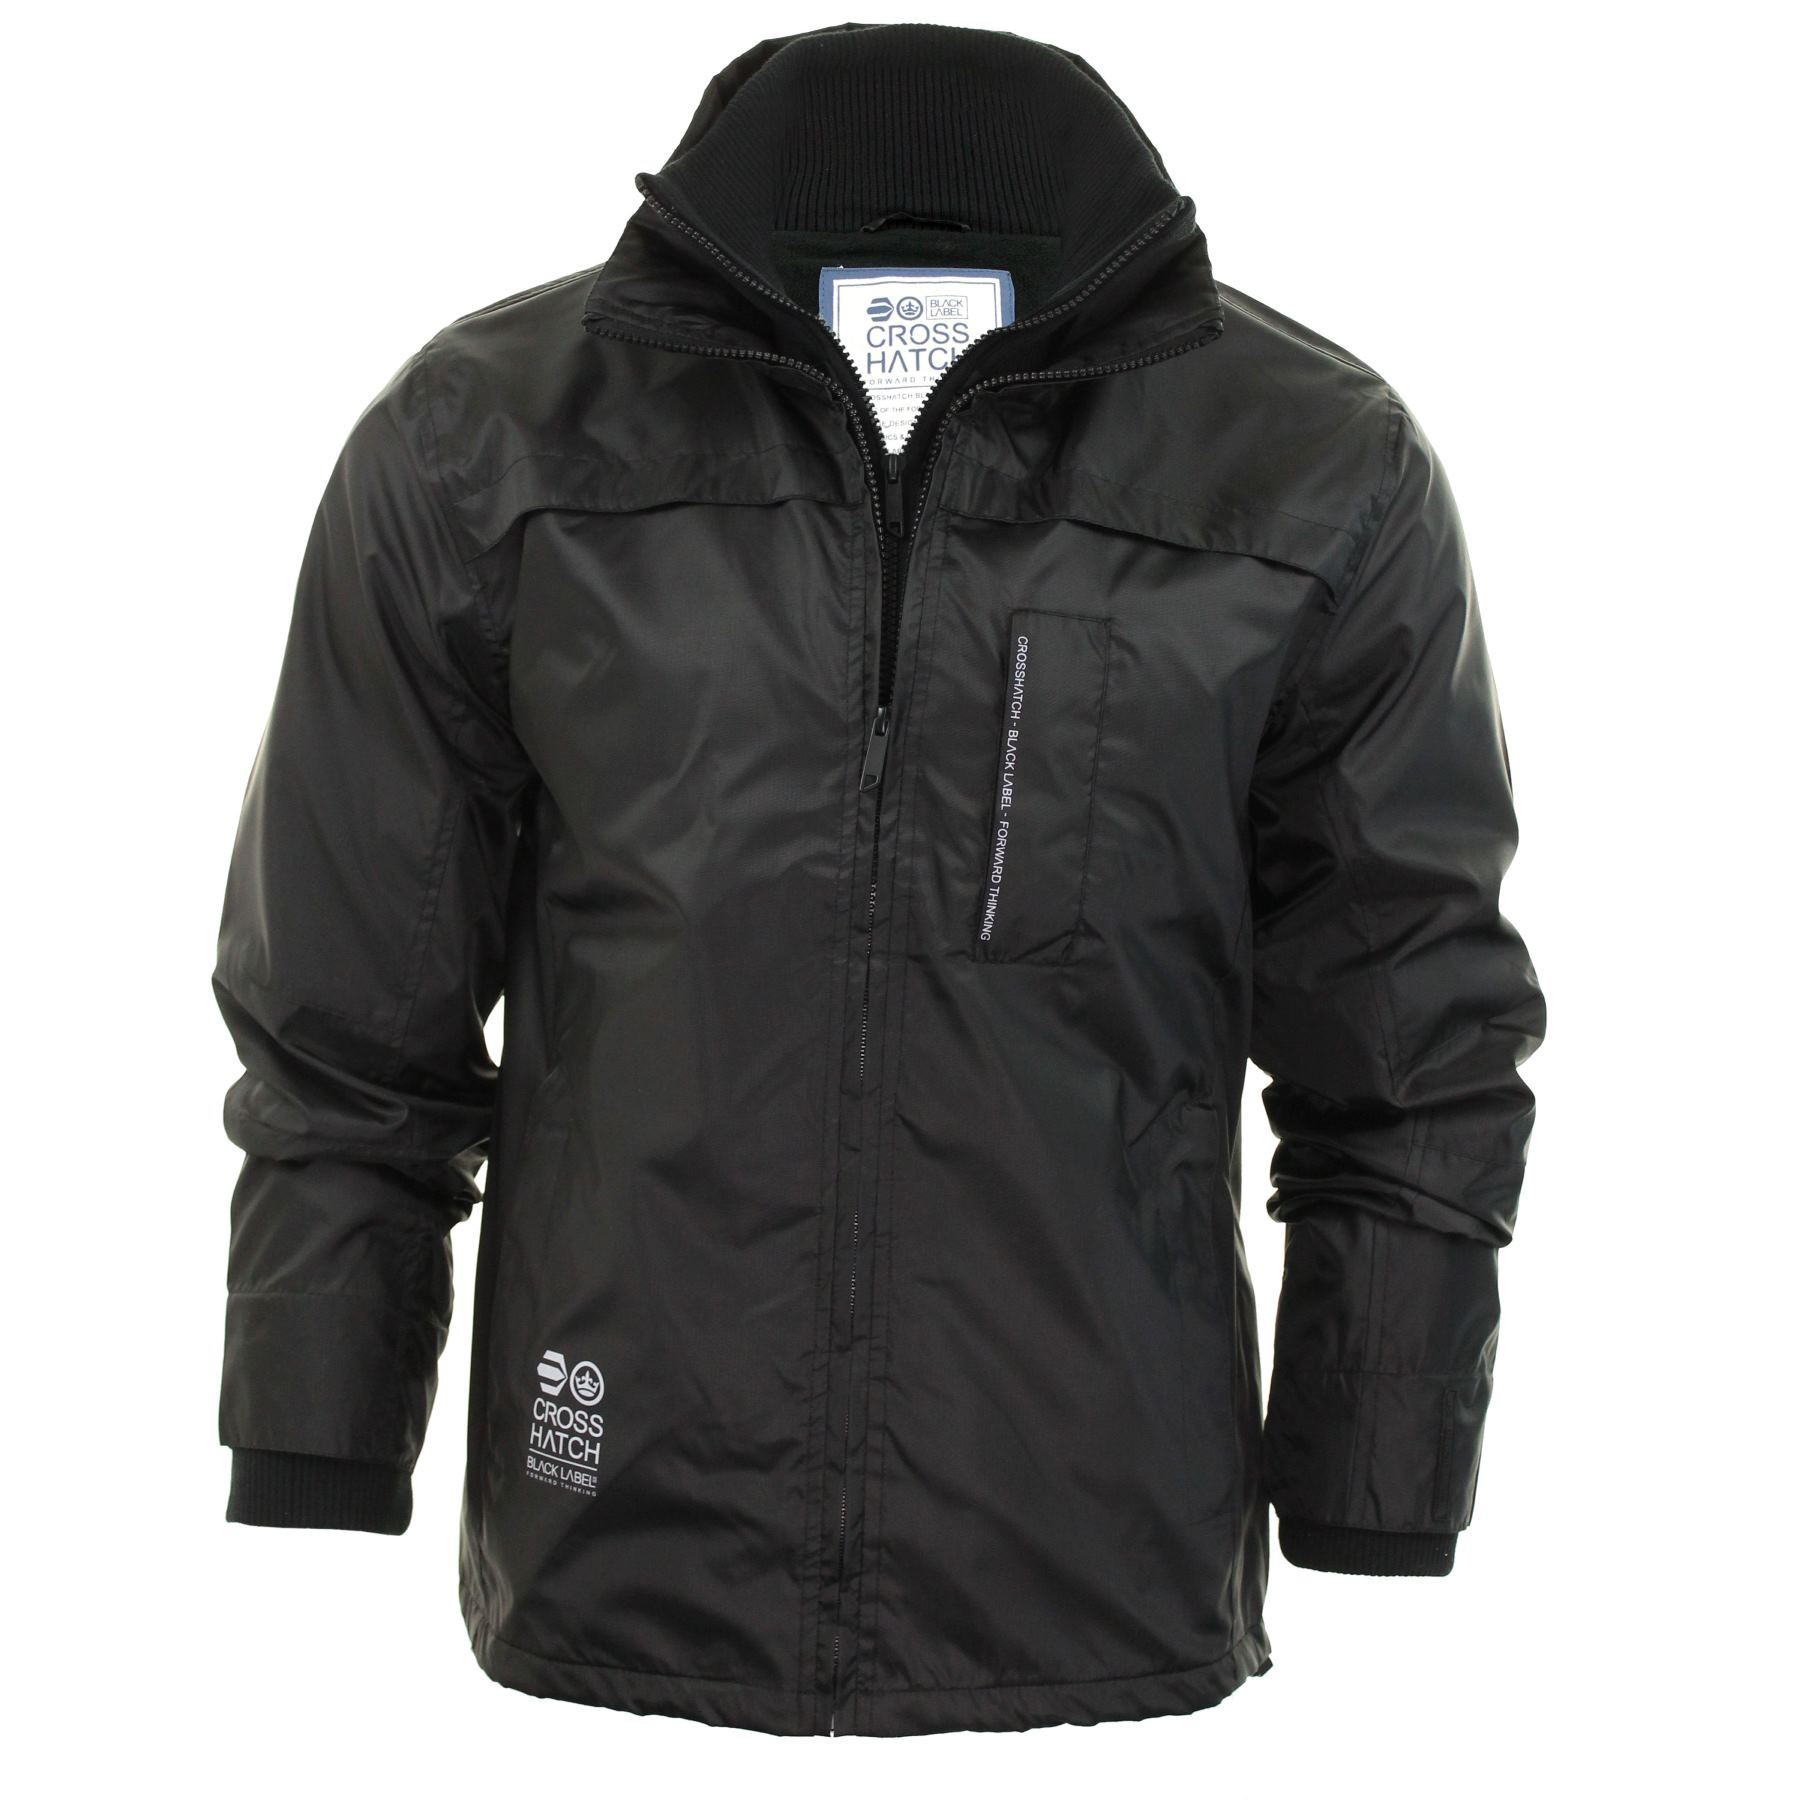 Find great deals on eBay for Windbreaker Jacket in Men's Coats And Jackets. Shop with confidence. Find great deals on eBay for Windbreaker Jackets in Men's Coats And Jackets. Vintage Chelsea water resistant, lined wind breaker jacket. Size XL. Well worn but loads left. Any questions let me know. Men's Plus Size Camo Stitching Hoodie Zipper.